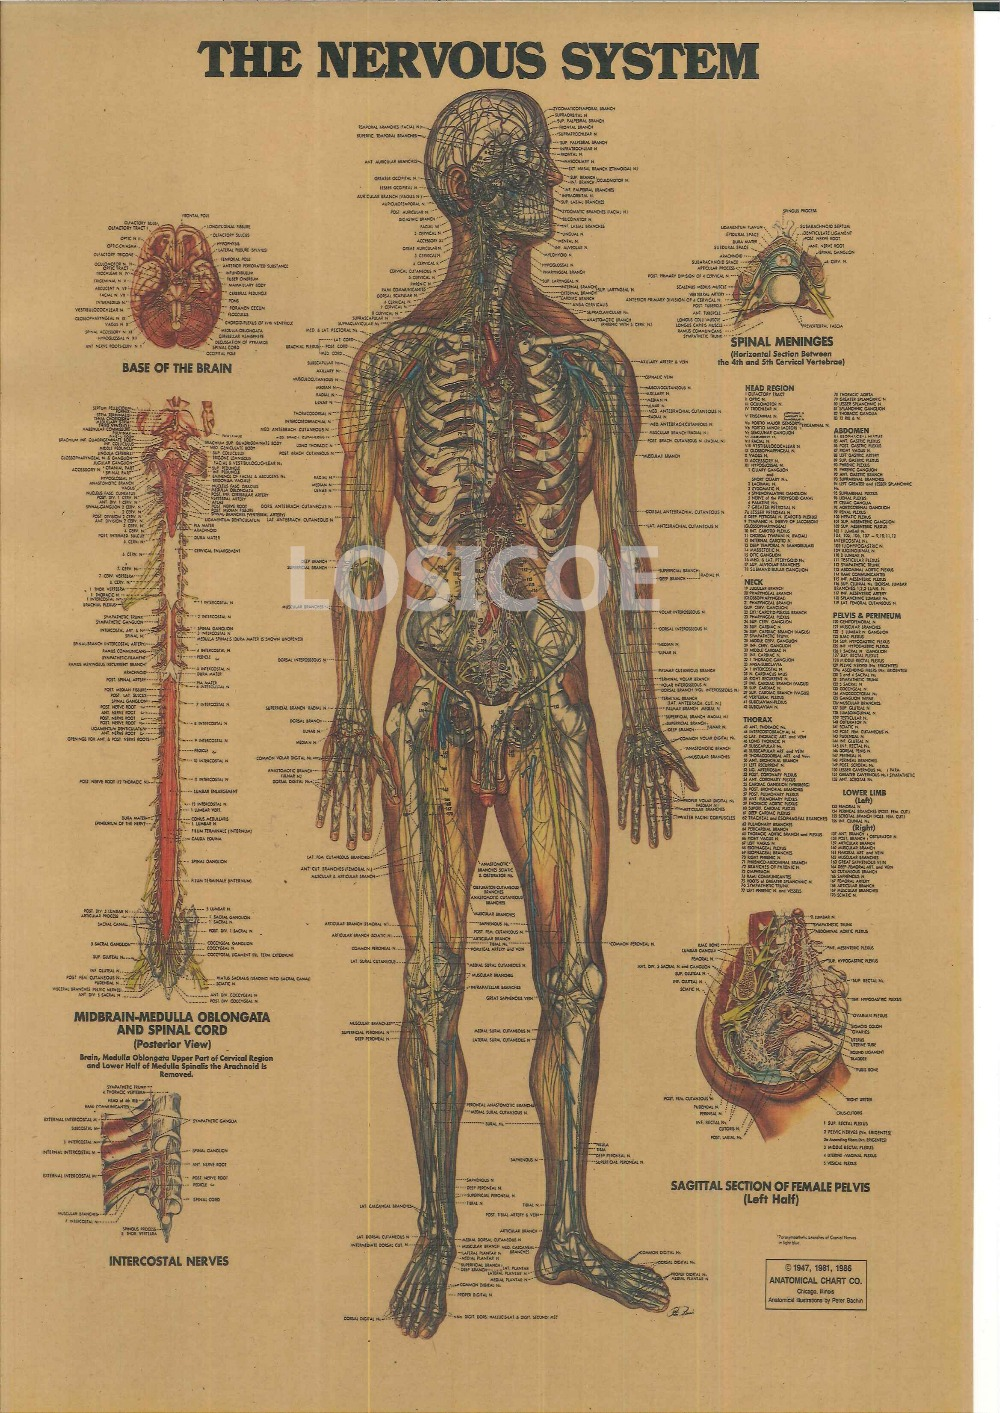 THE SKELETAL SYSTEM Vintage Posters Kraft Paper Painting Wall Sticker Print Art Hospital Classrooms Interior Decoration B(China (Mainland))